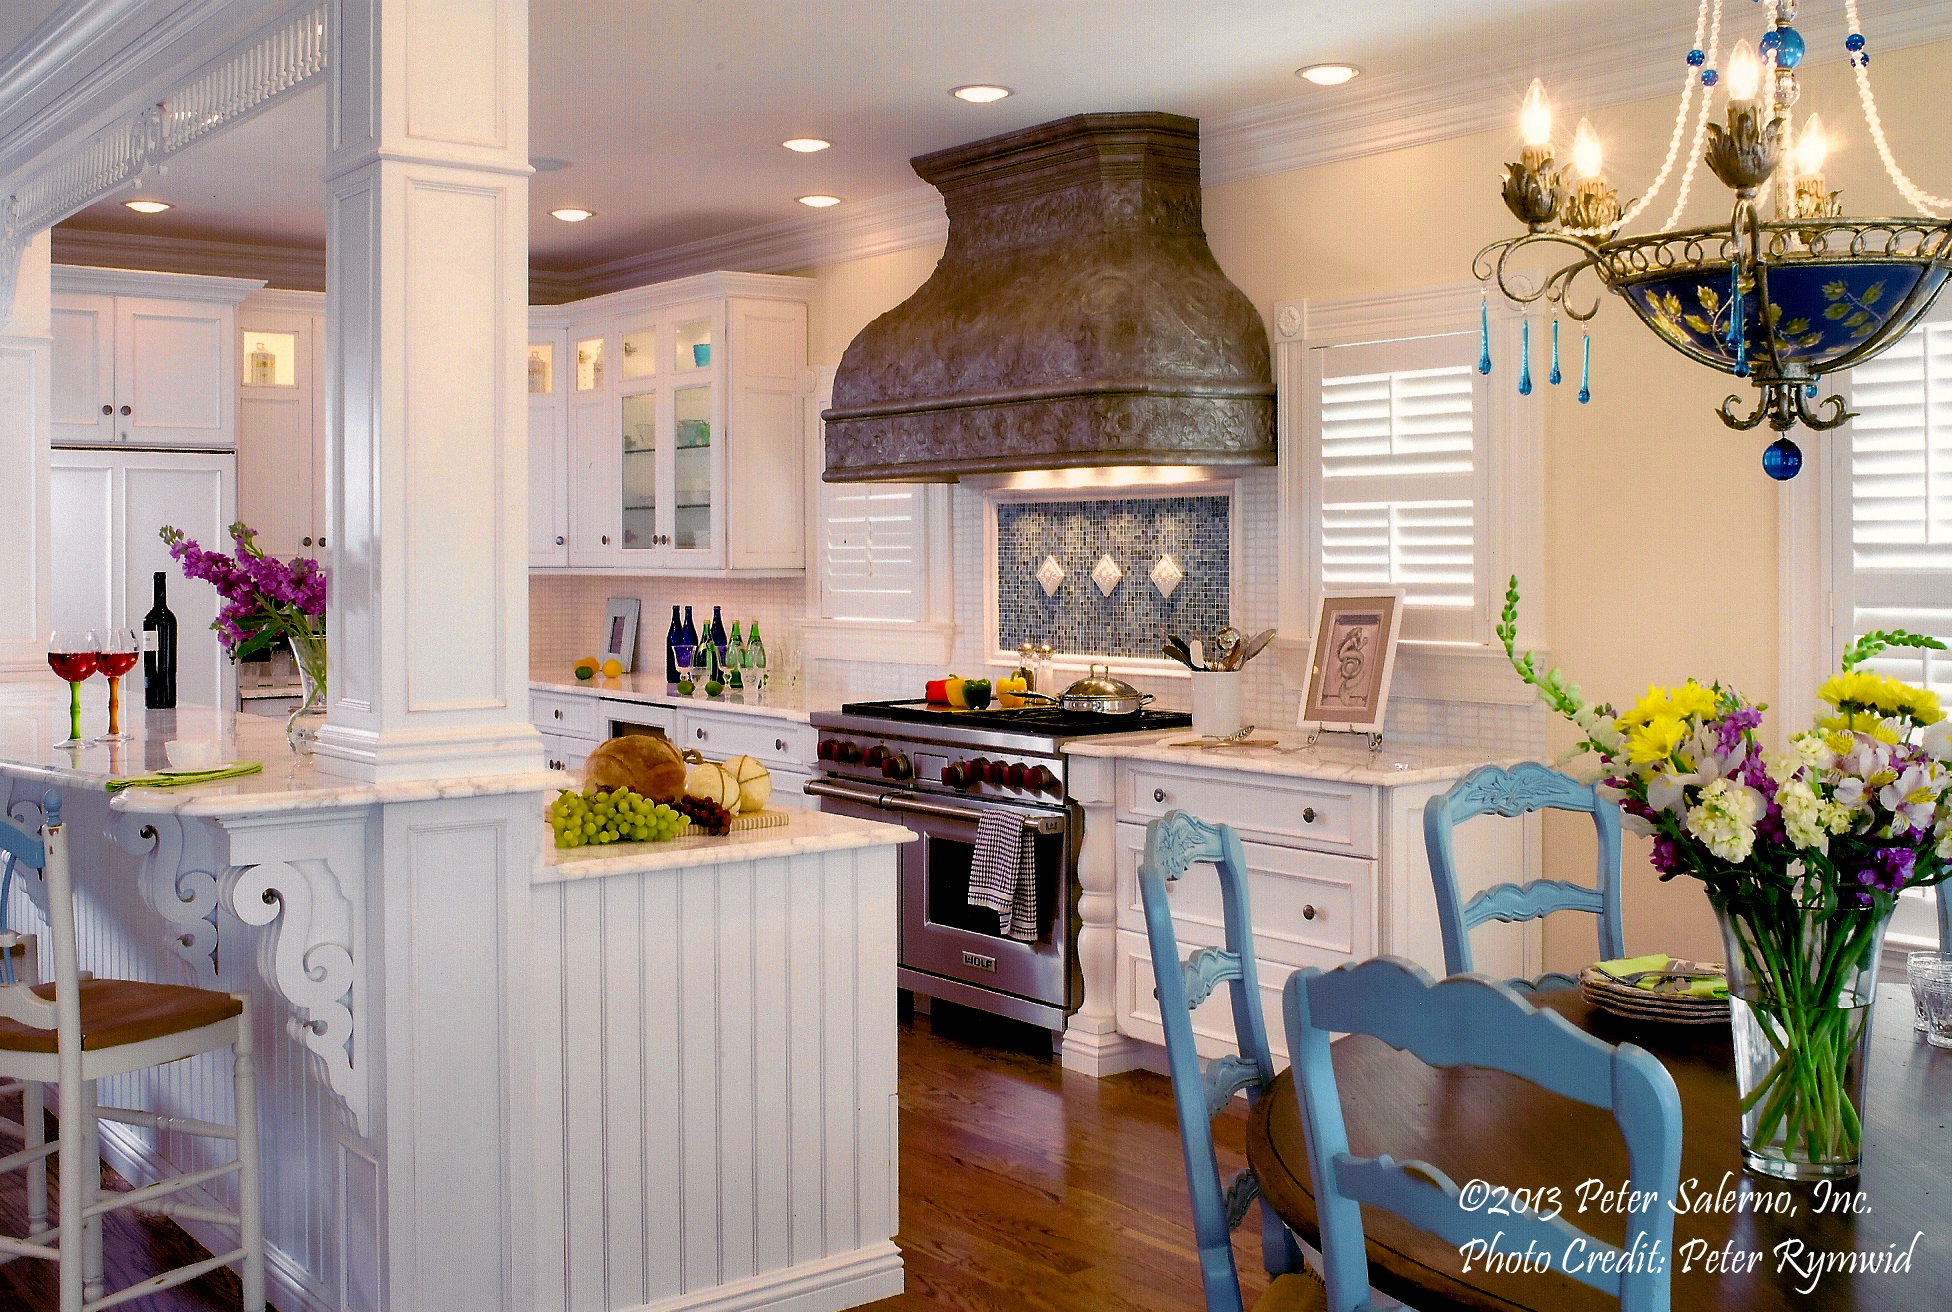 Summer Kitchen Design kitchen design – design your lifestyle.